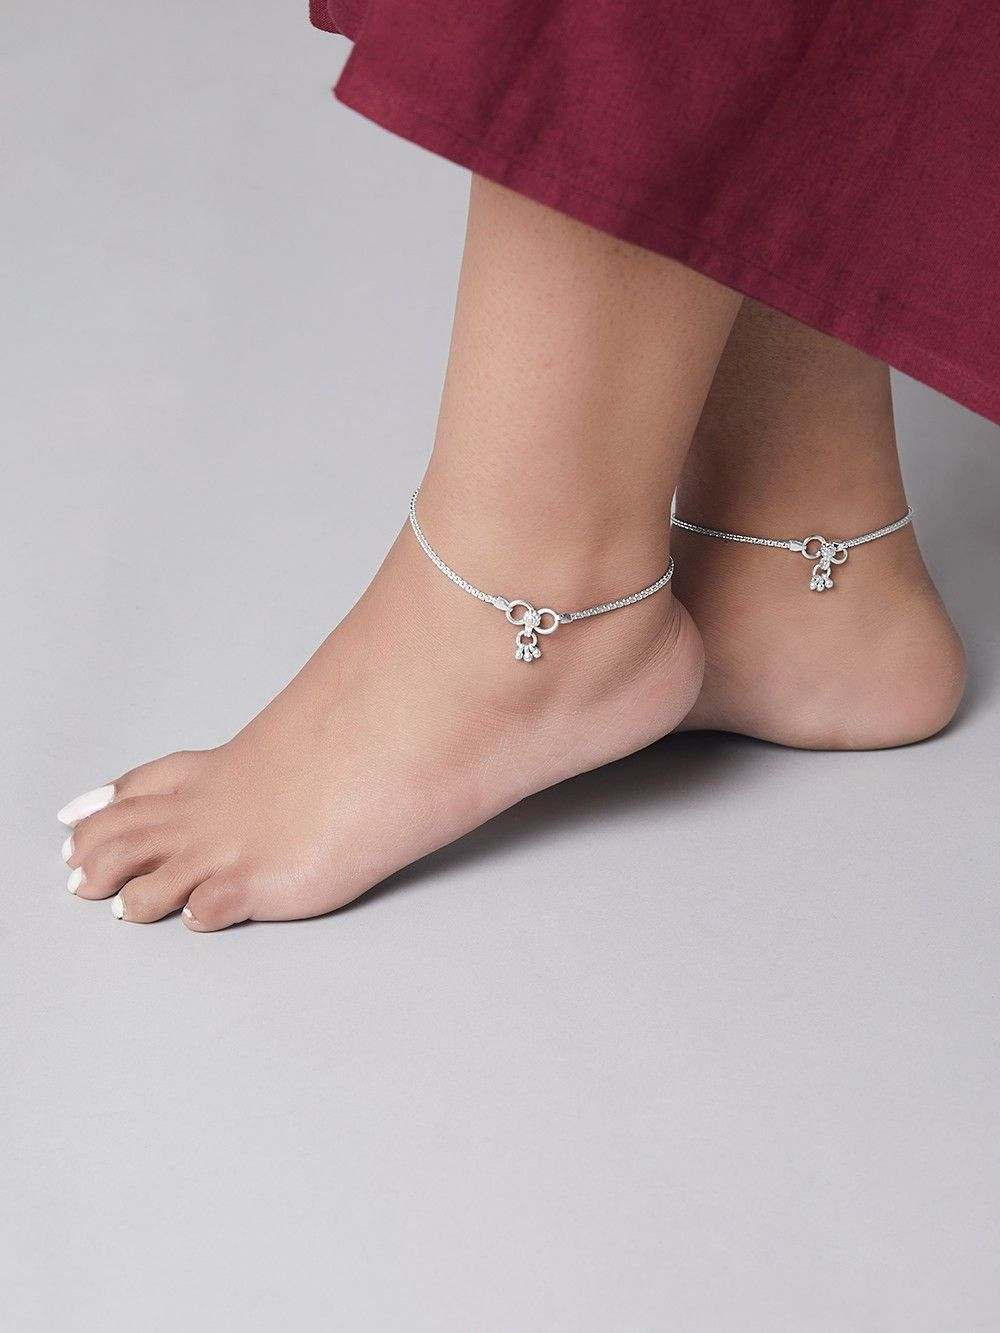 ankle womens foot bracelets platinum bracelet store cube piece anklets leg chain beads expandable pendant gift jewelry bangles vintage gold anklet on online lyso with s wihte bridal plated product